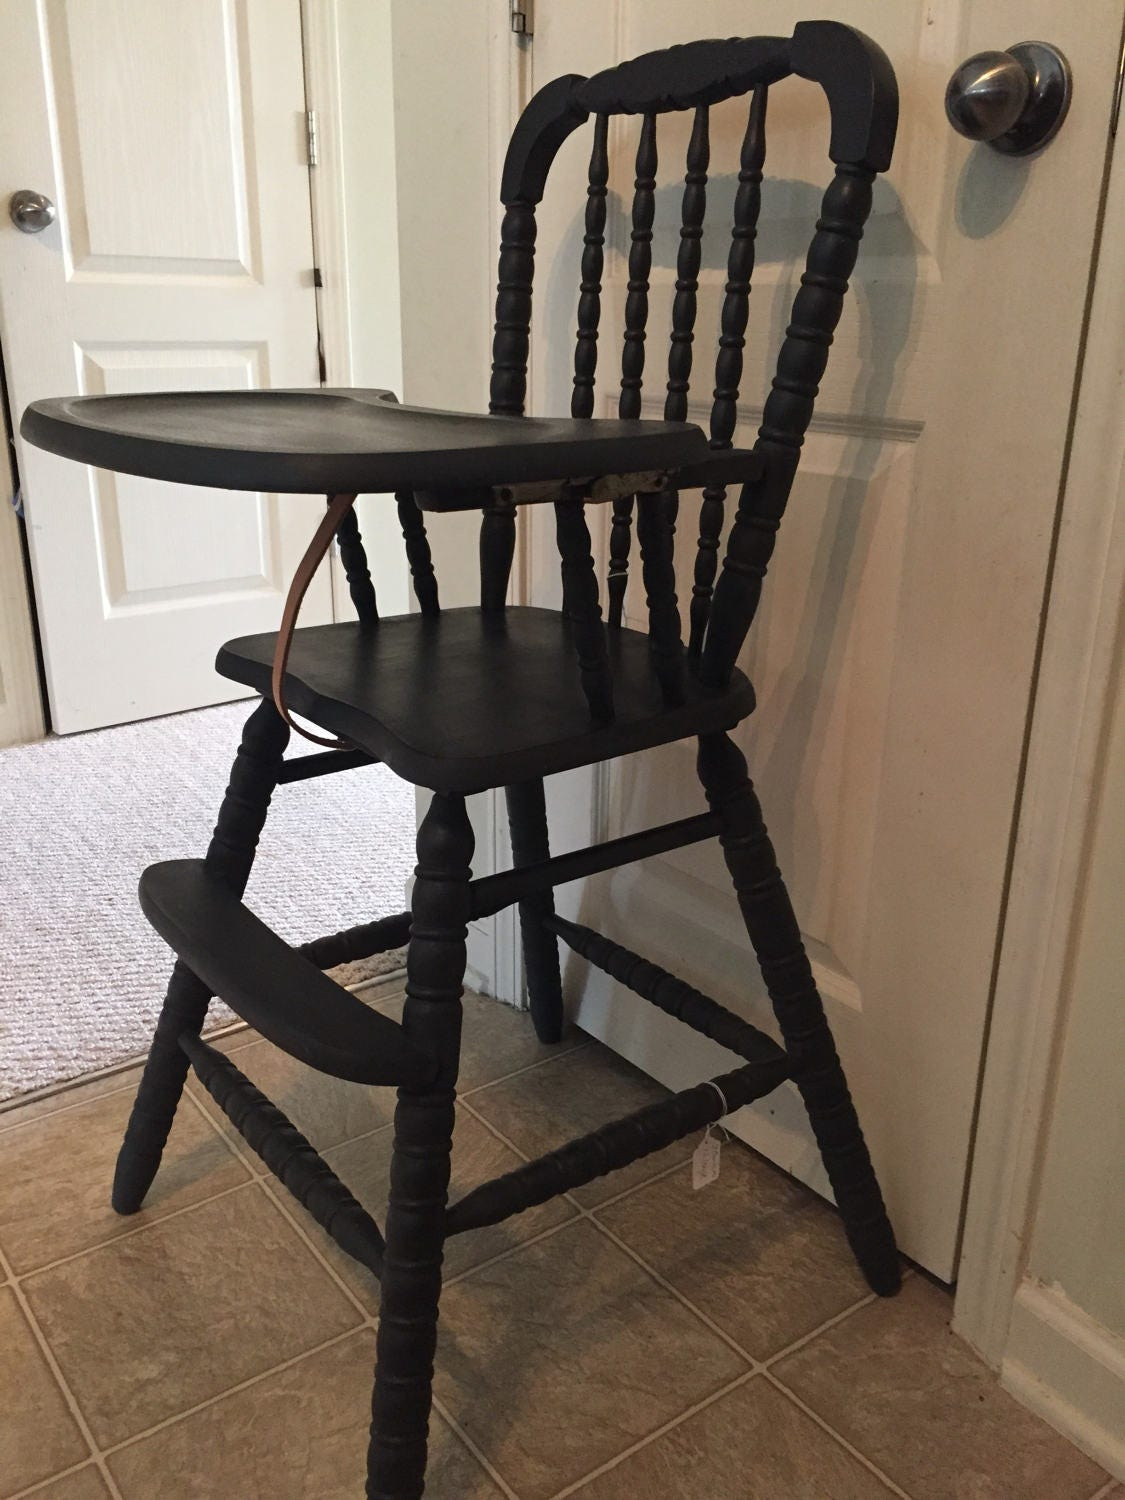 Vintage wooden high chair -  Zoom